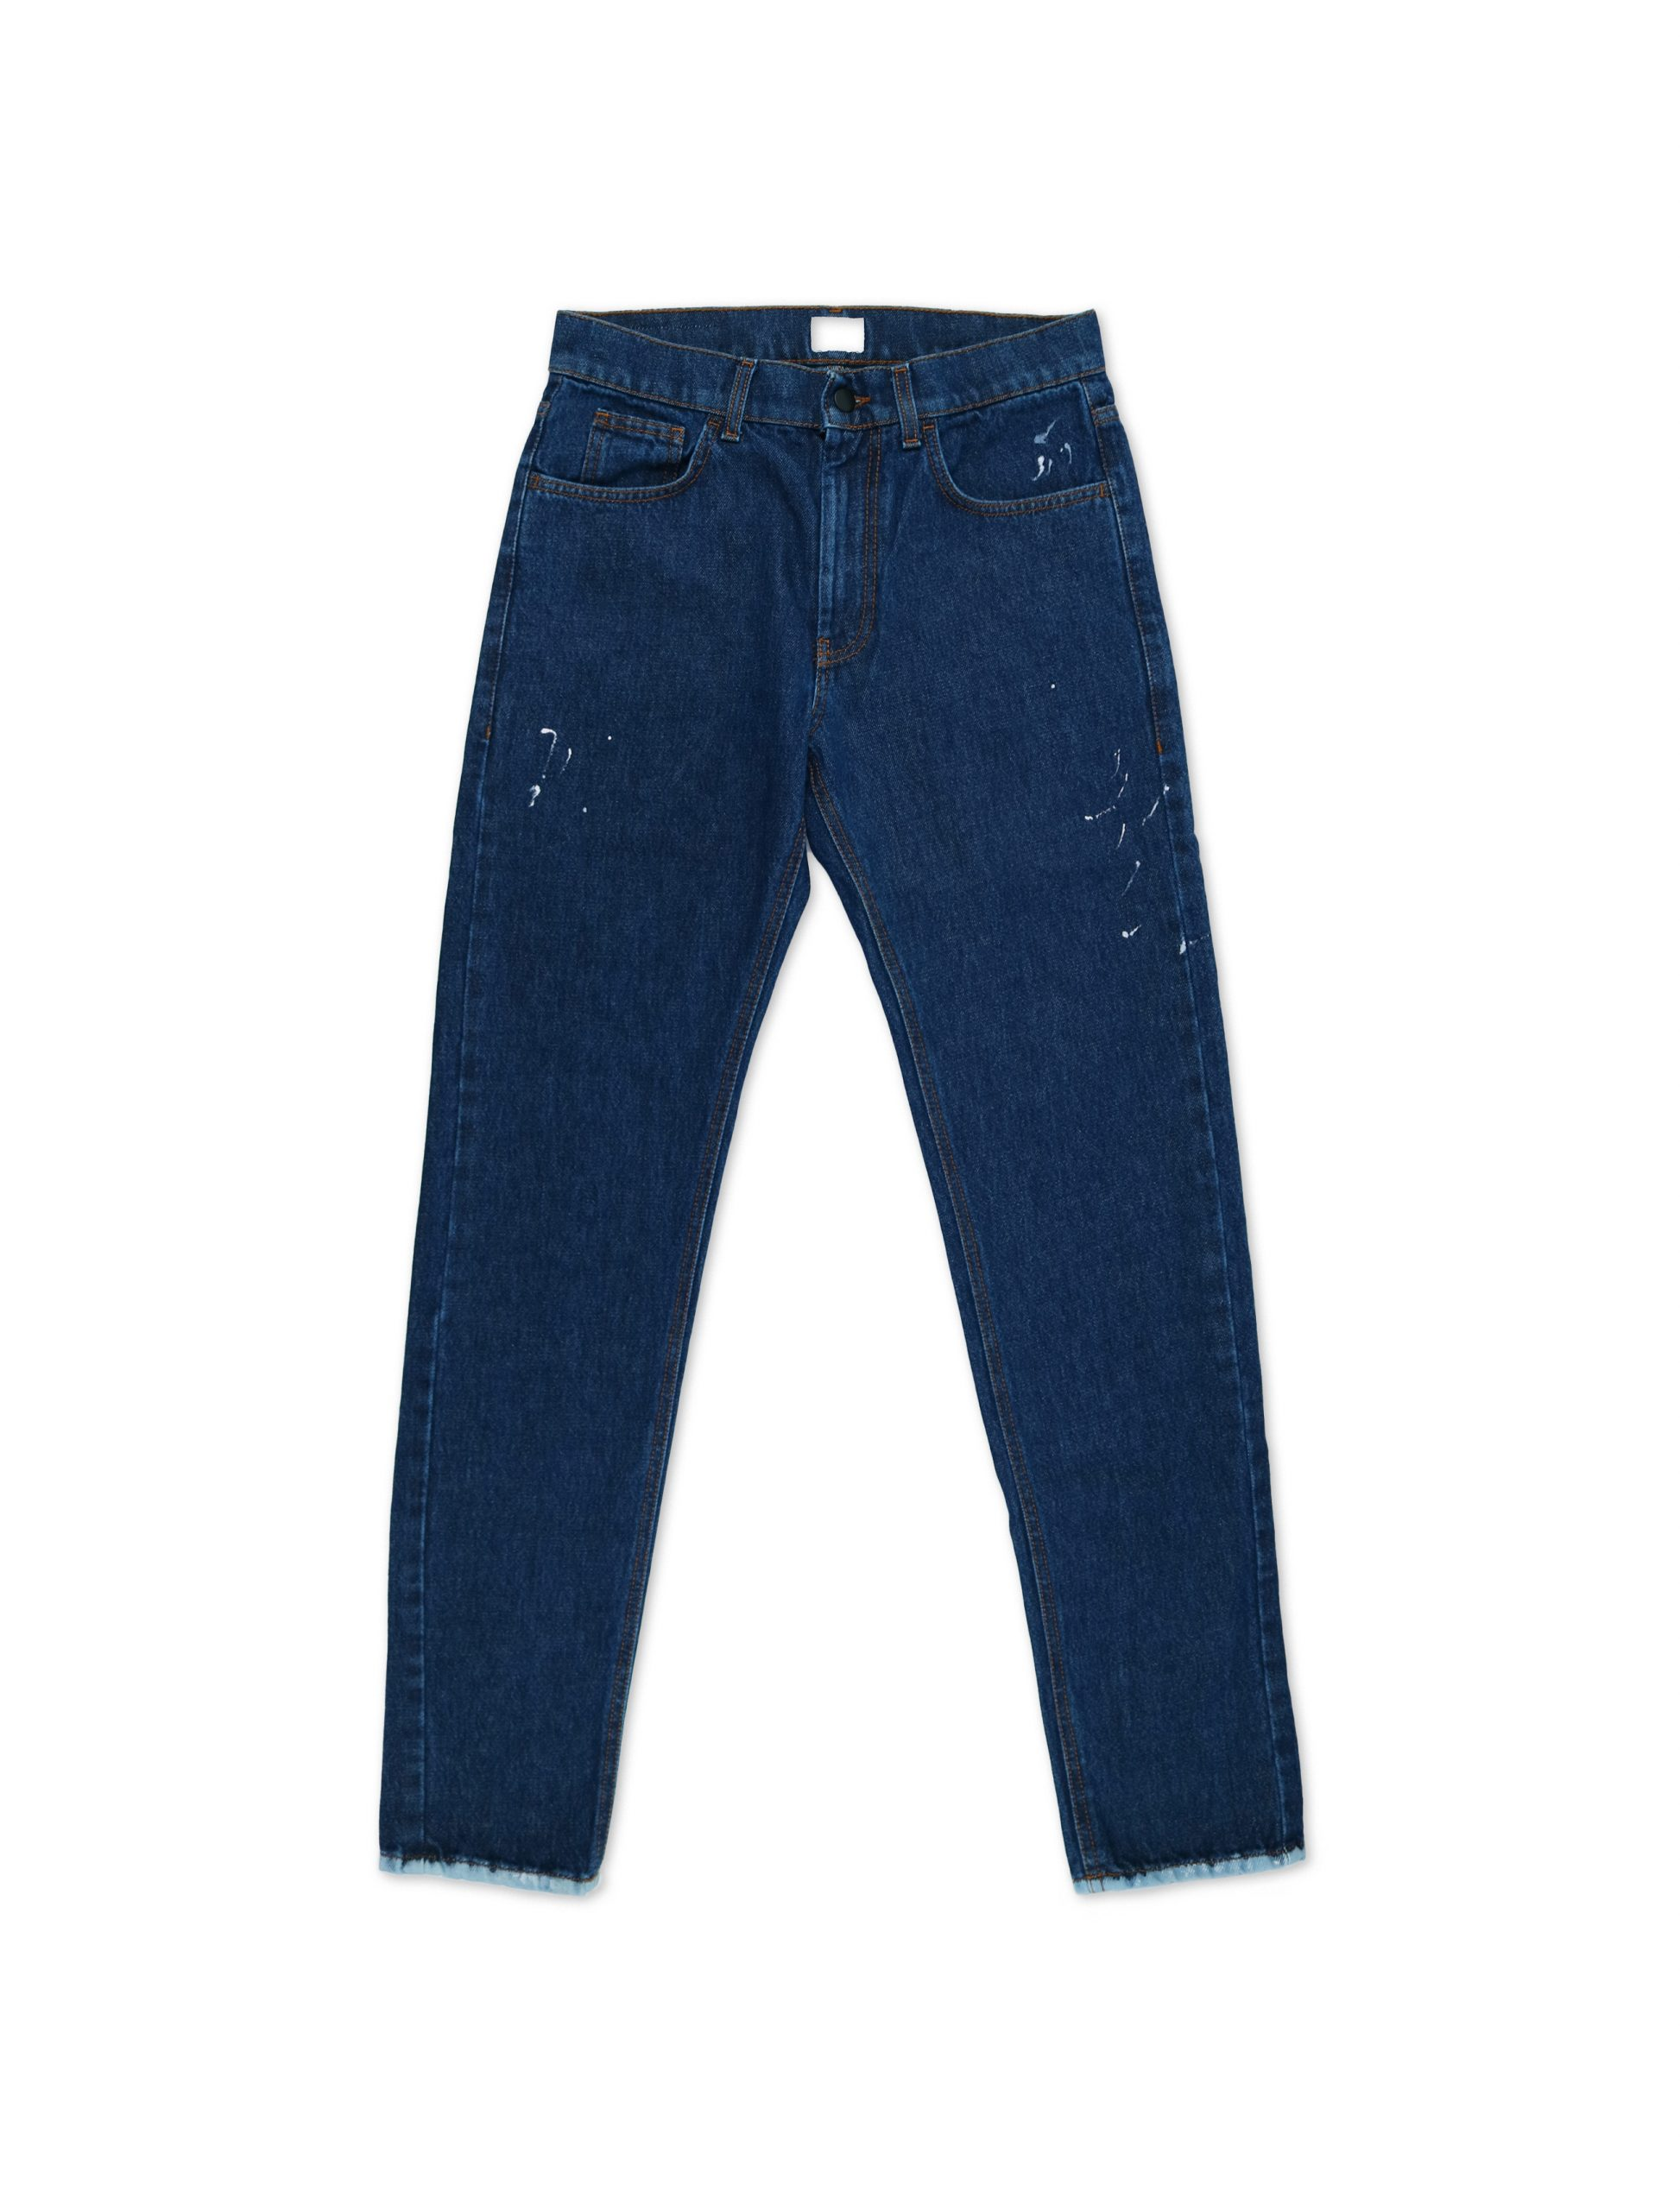 Jeans Regular White Drips | Wooden Store